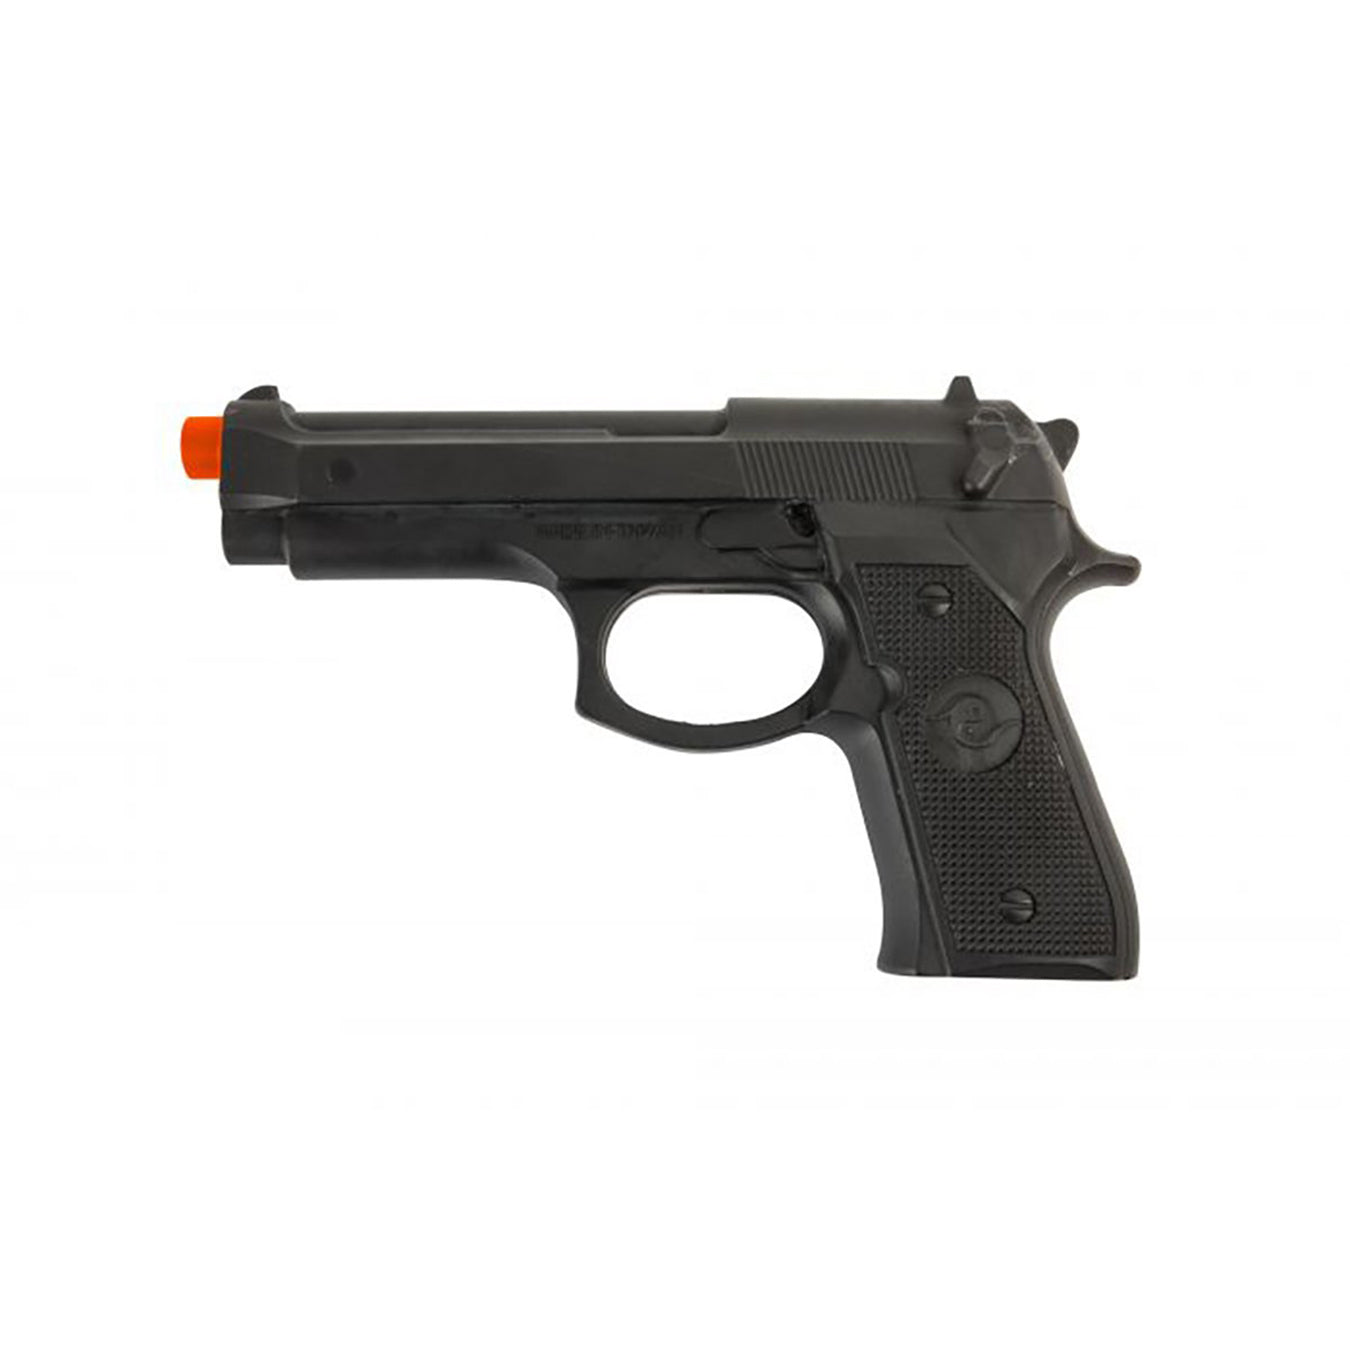 THERMOPLASTIC RUBBER TRAINING GUN